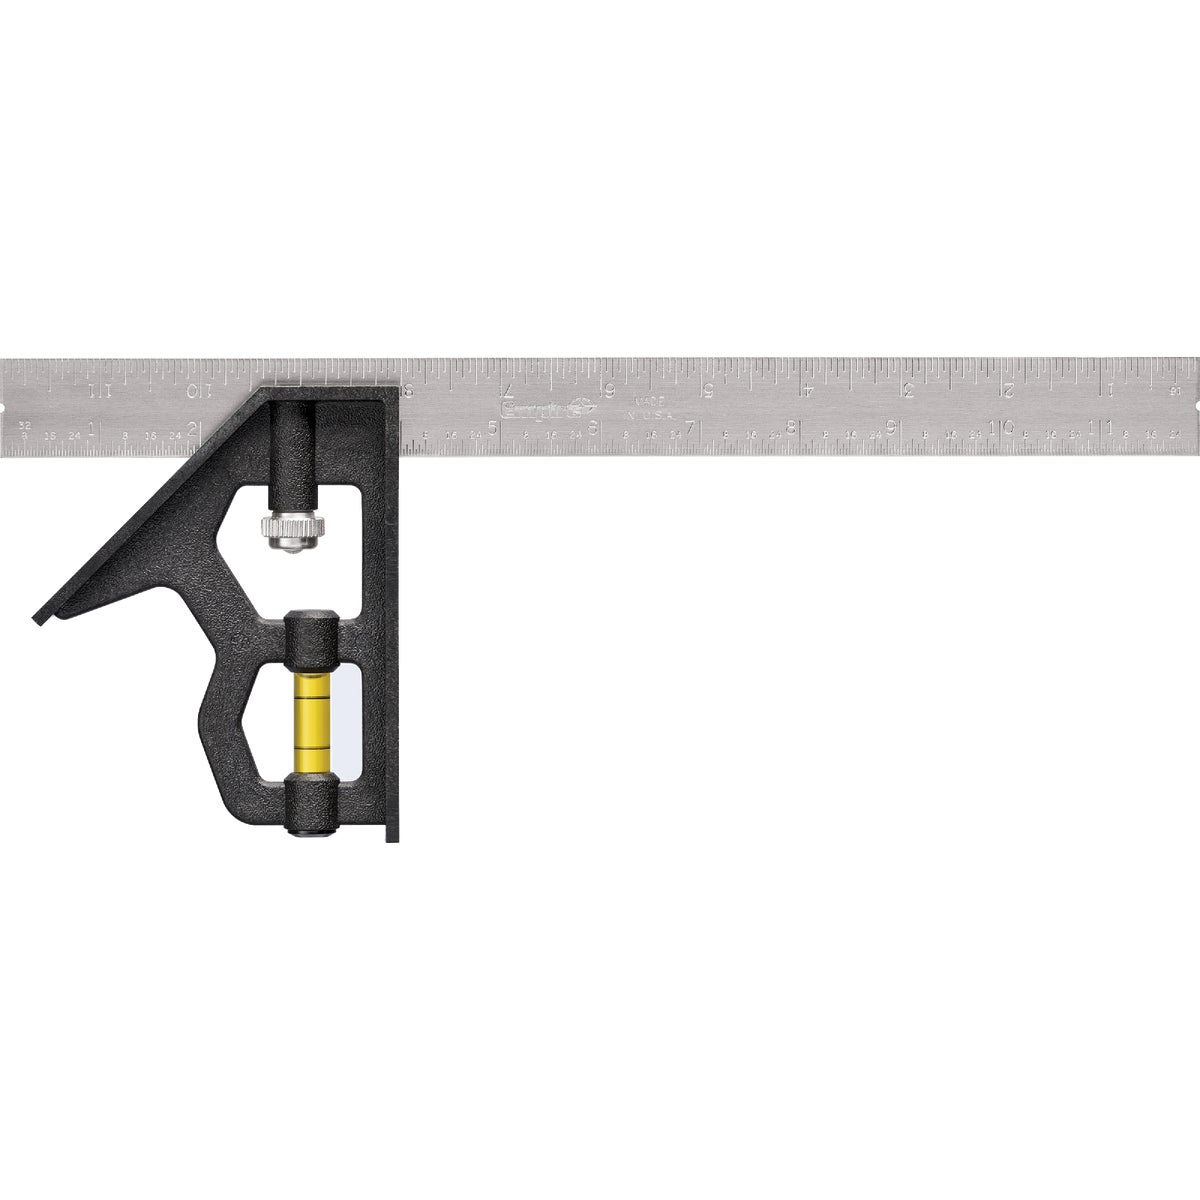 "12"" COMBINATION SQUARE - 46-012 by Stanley Tools"